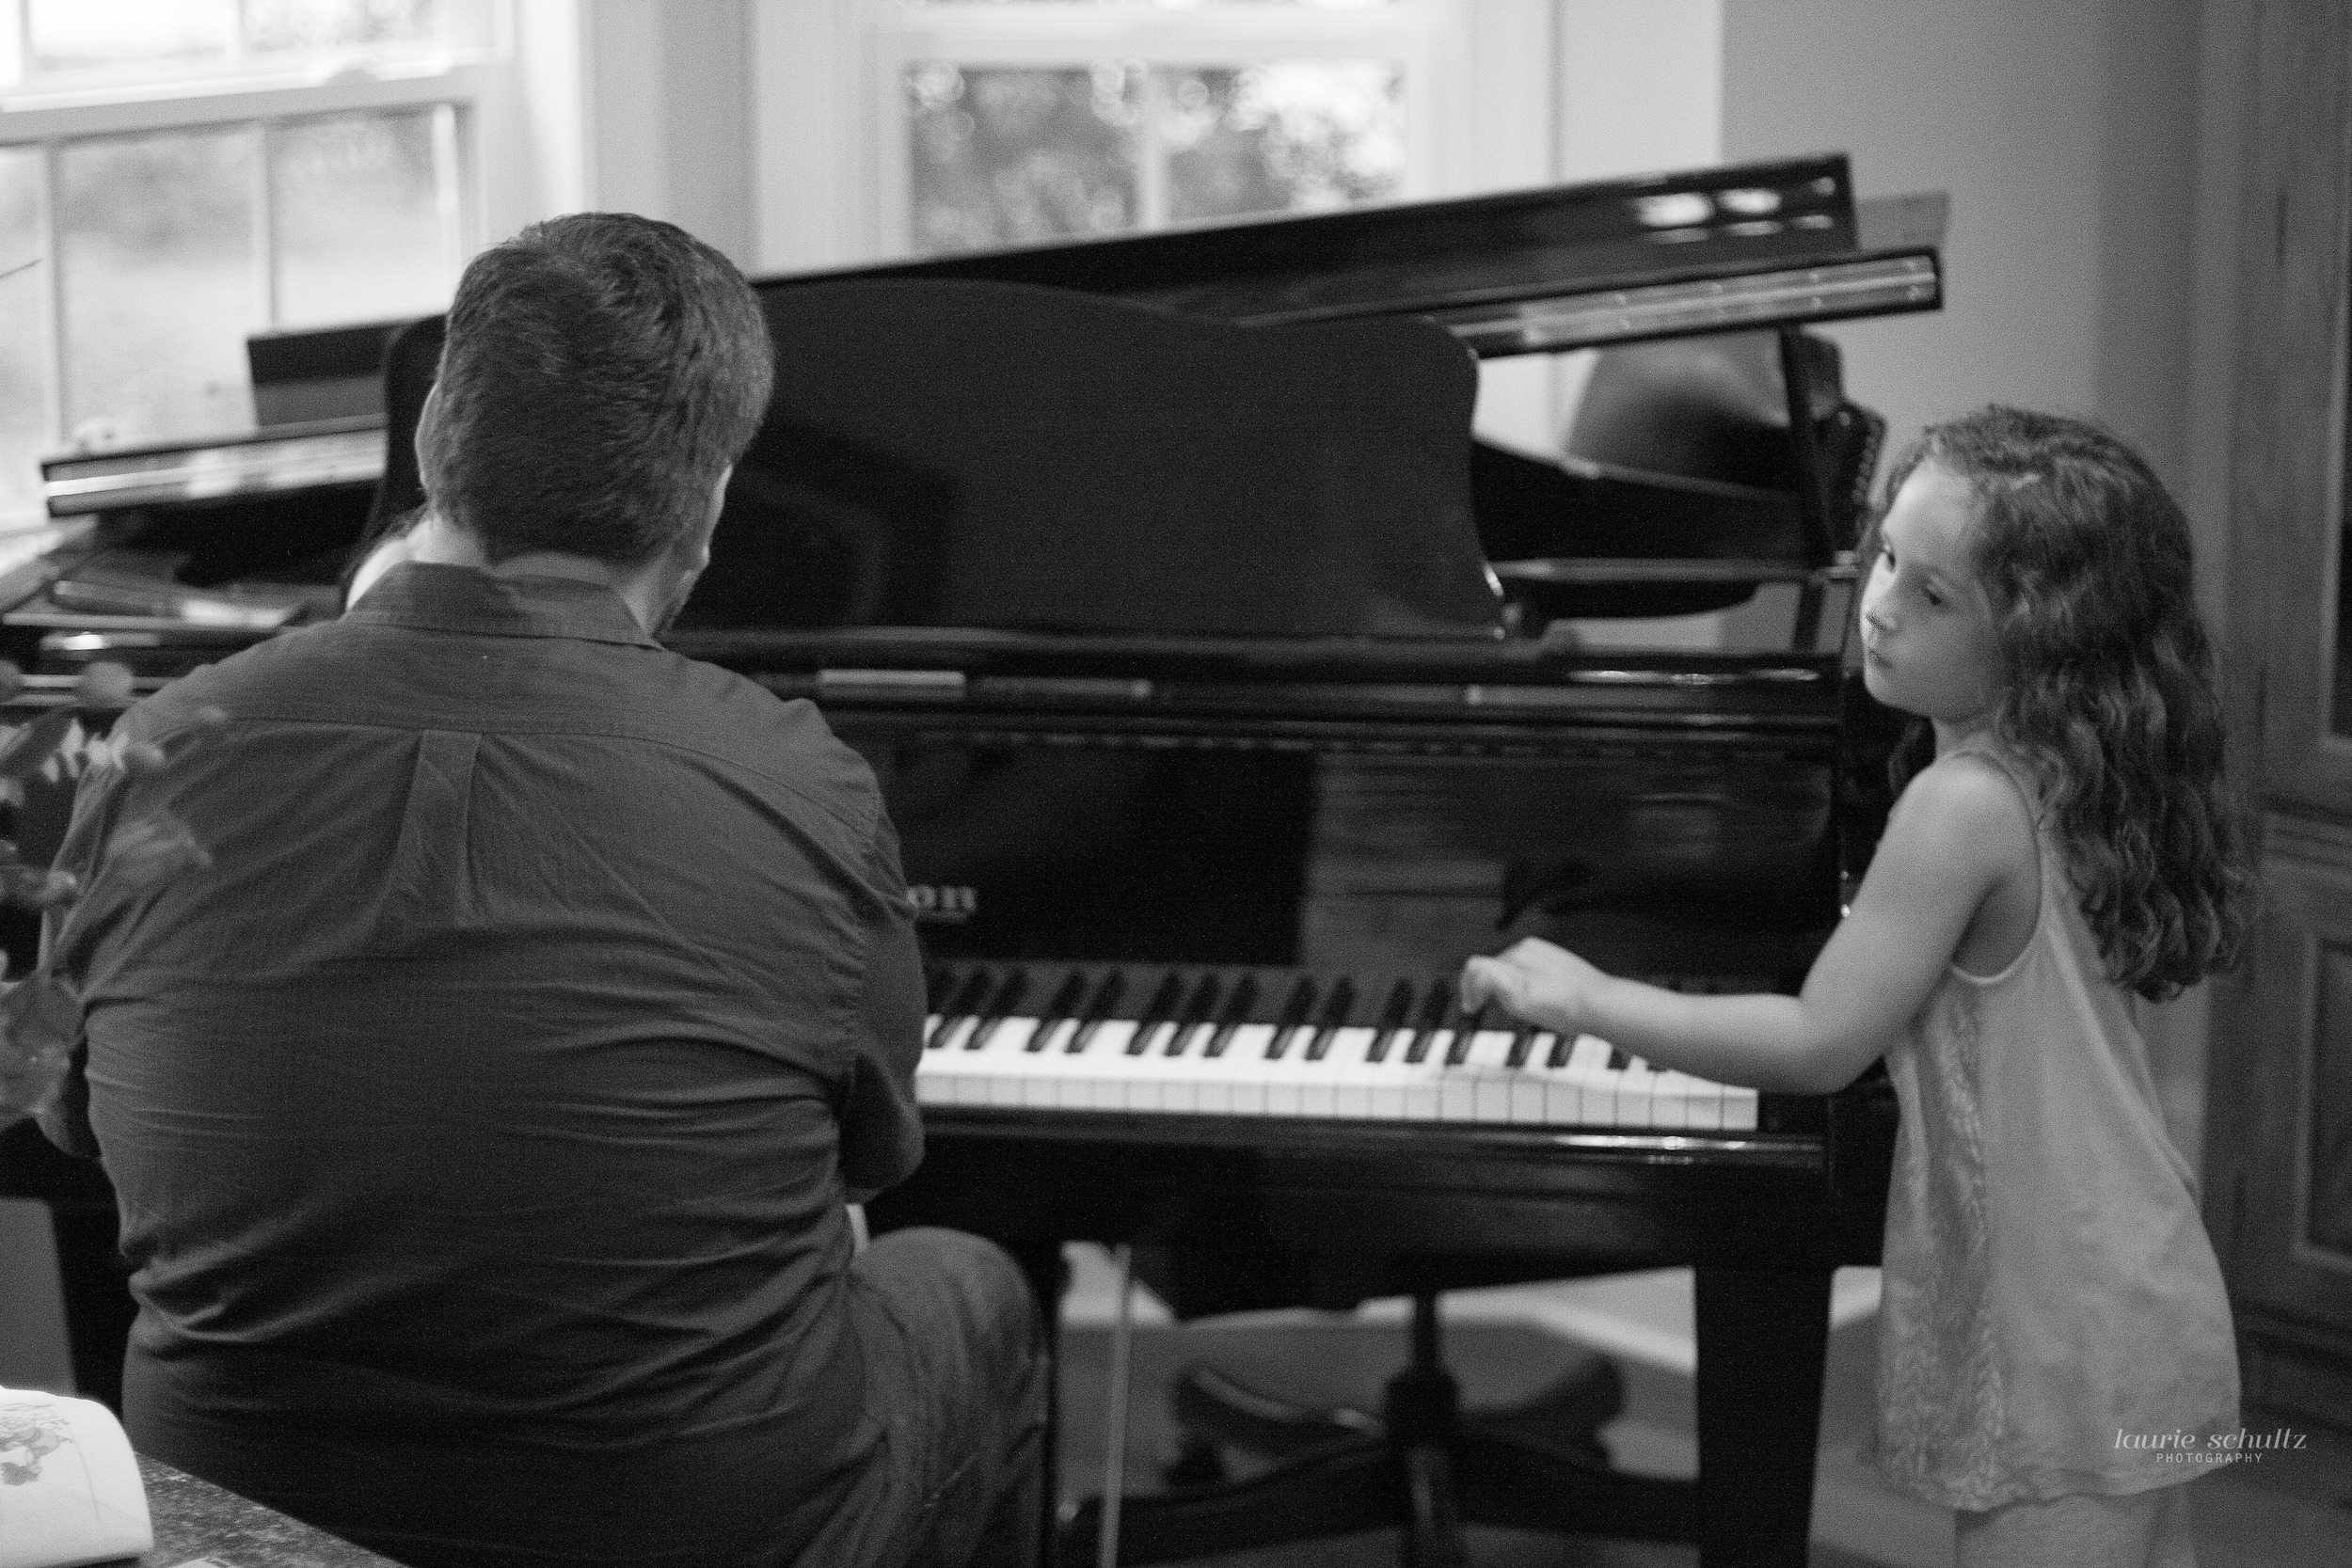 A dad and his little girl playing piano